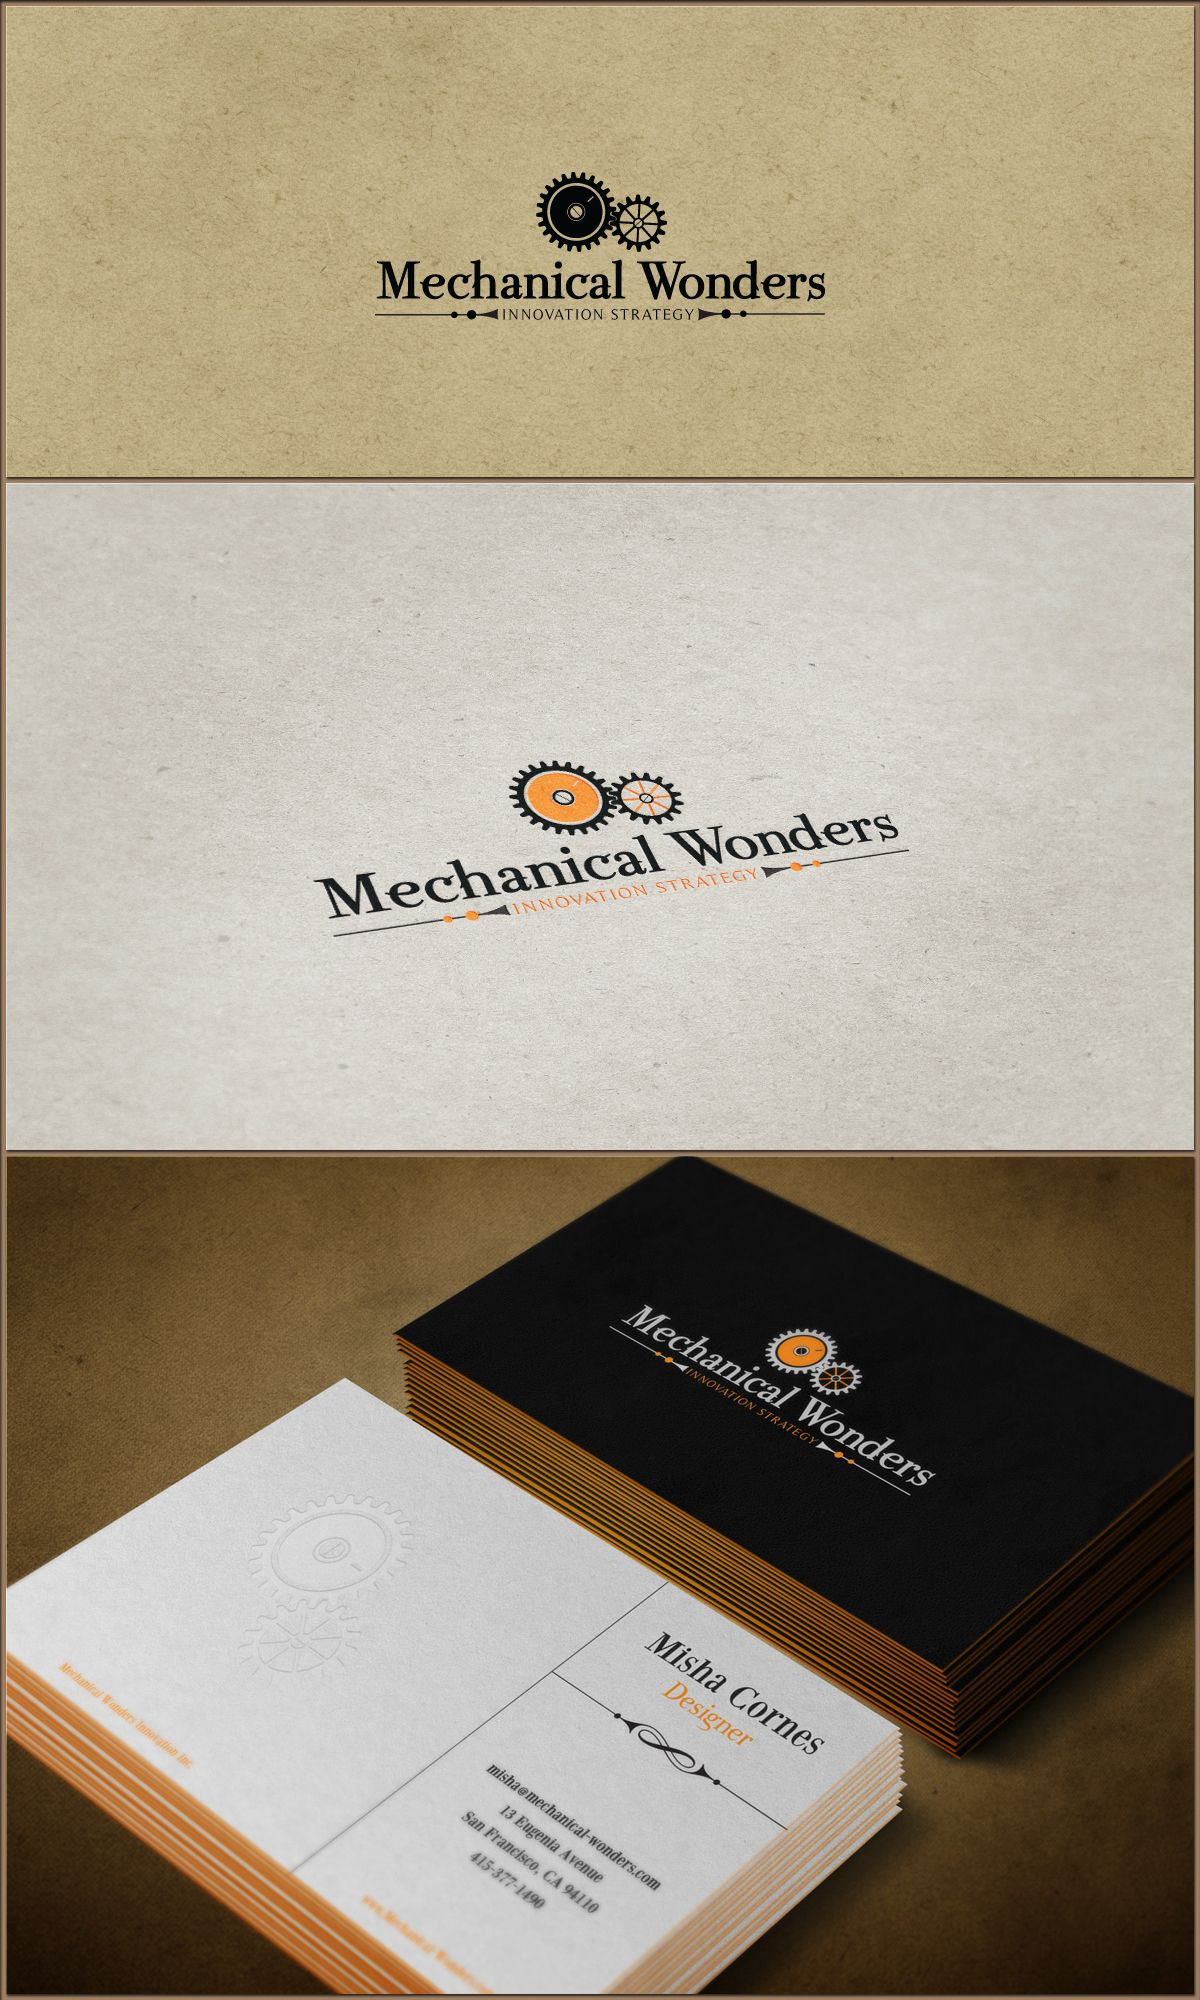 Mechanical Wonders Logo Business Card By Andrei Cosma I Like The Blank Space For Notes Business Card Logo Design Name Card Design Business Card Design